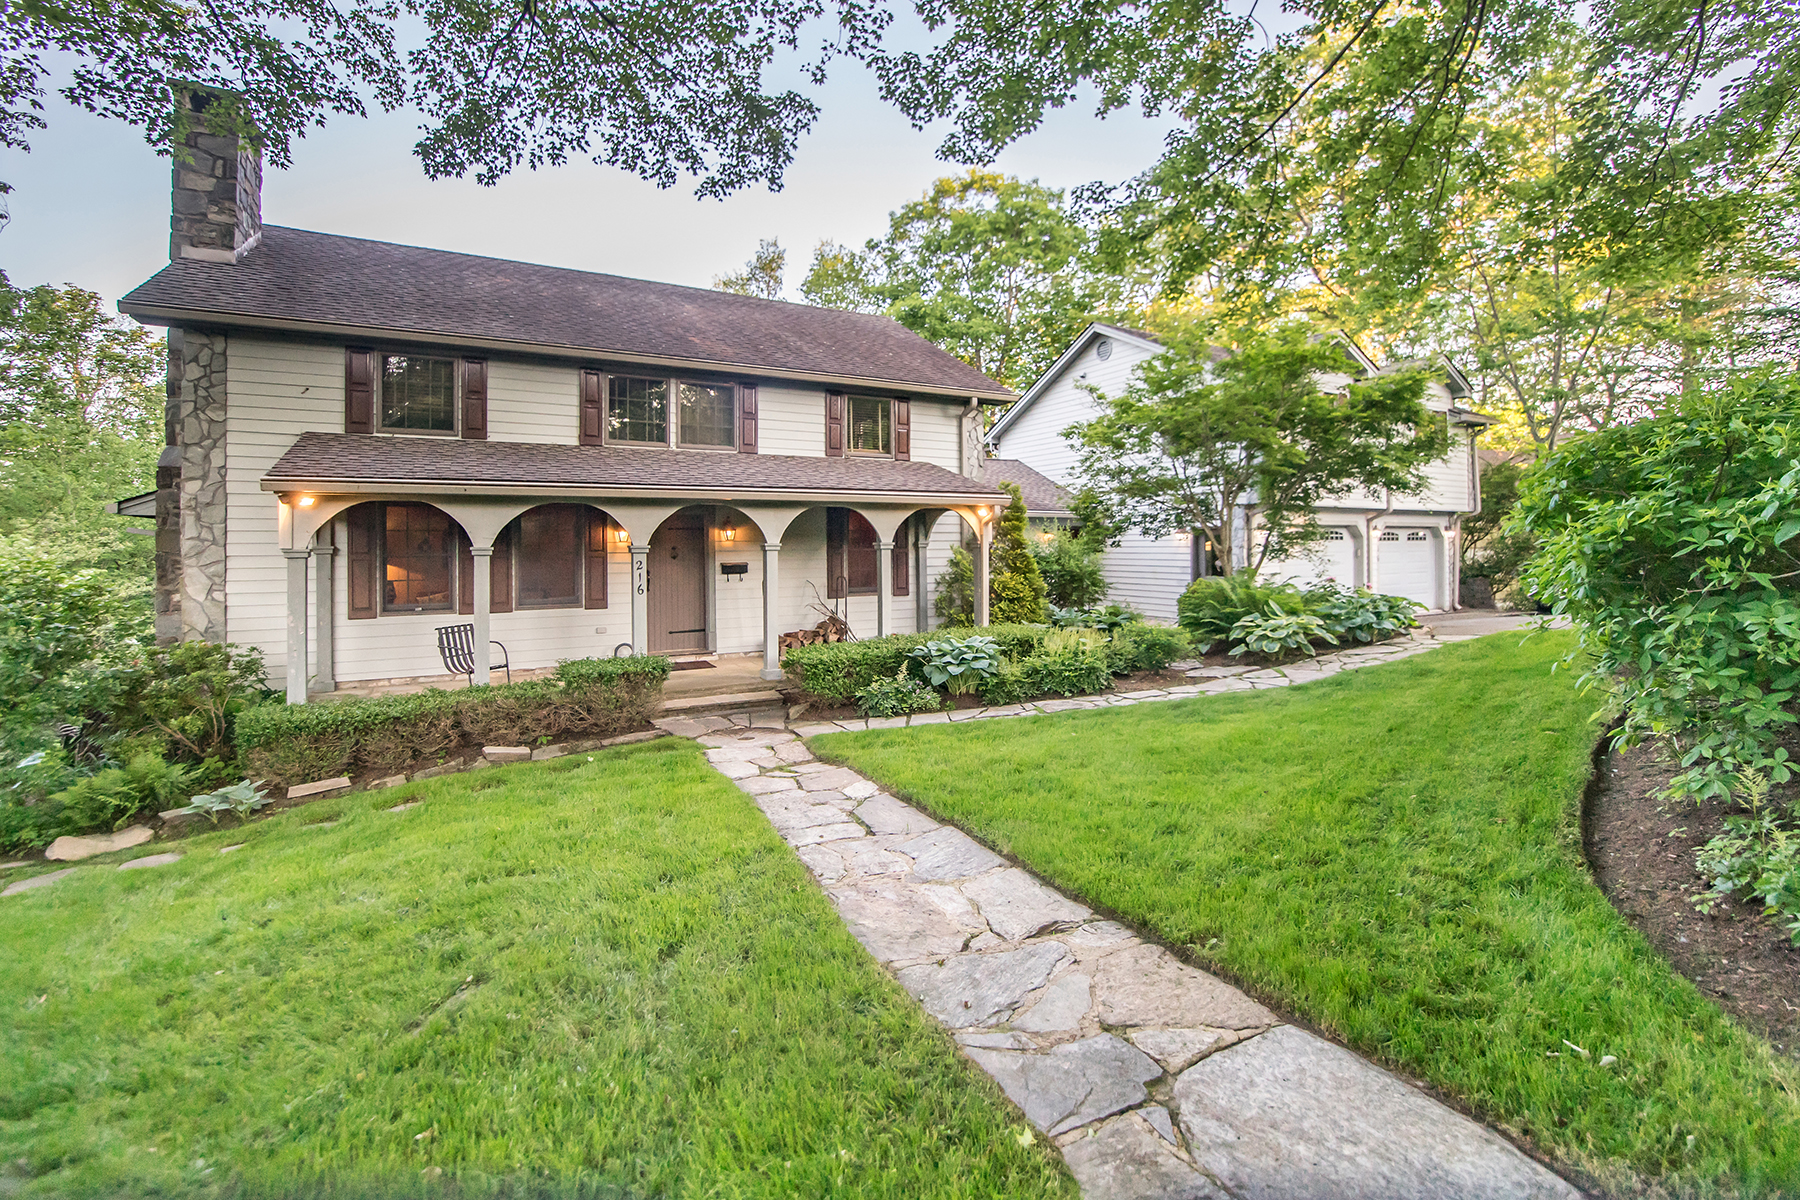 Single Family Homes for Sale at BLOWING ROCK 216 Rankin Rd Blowing Rock, North Carolina 28605 United States